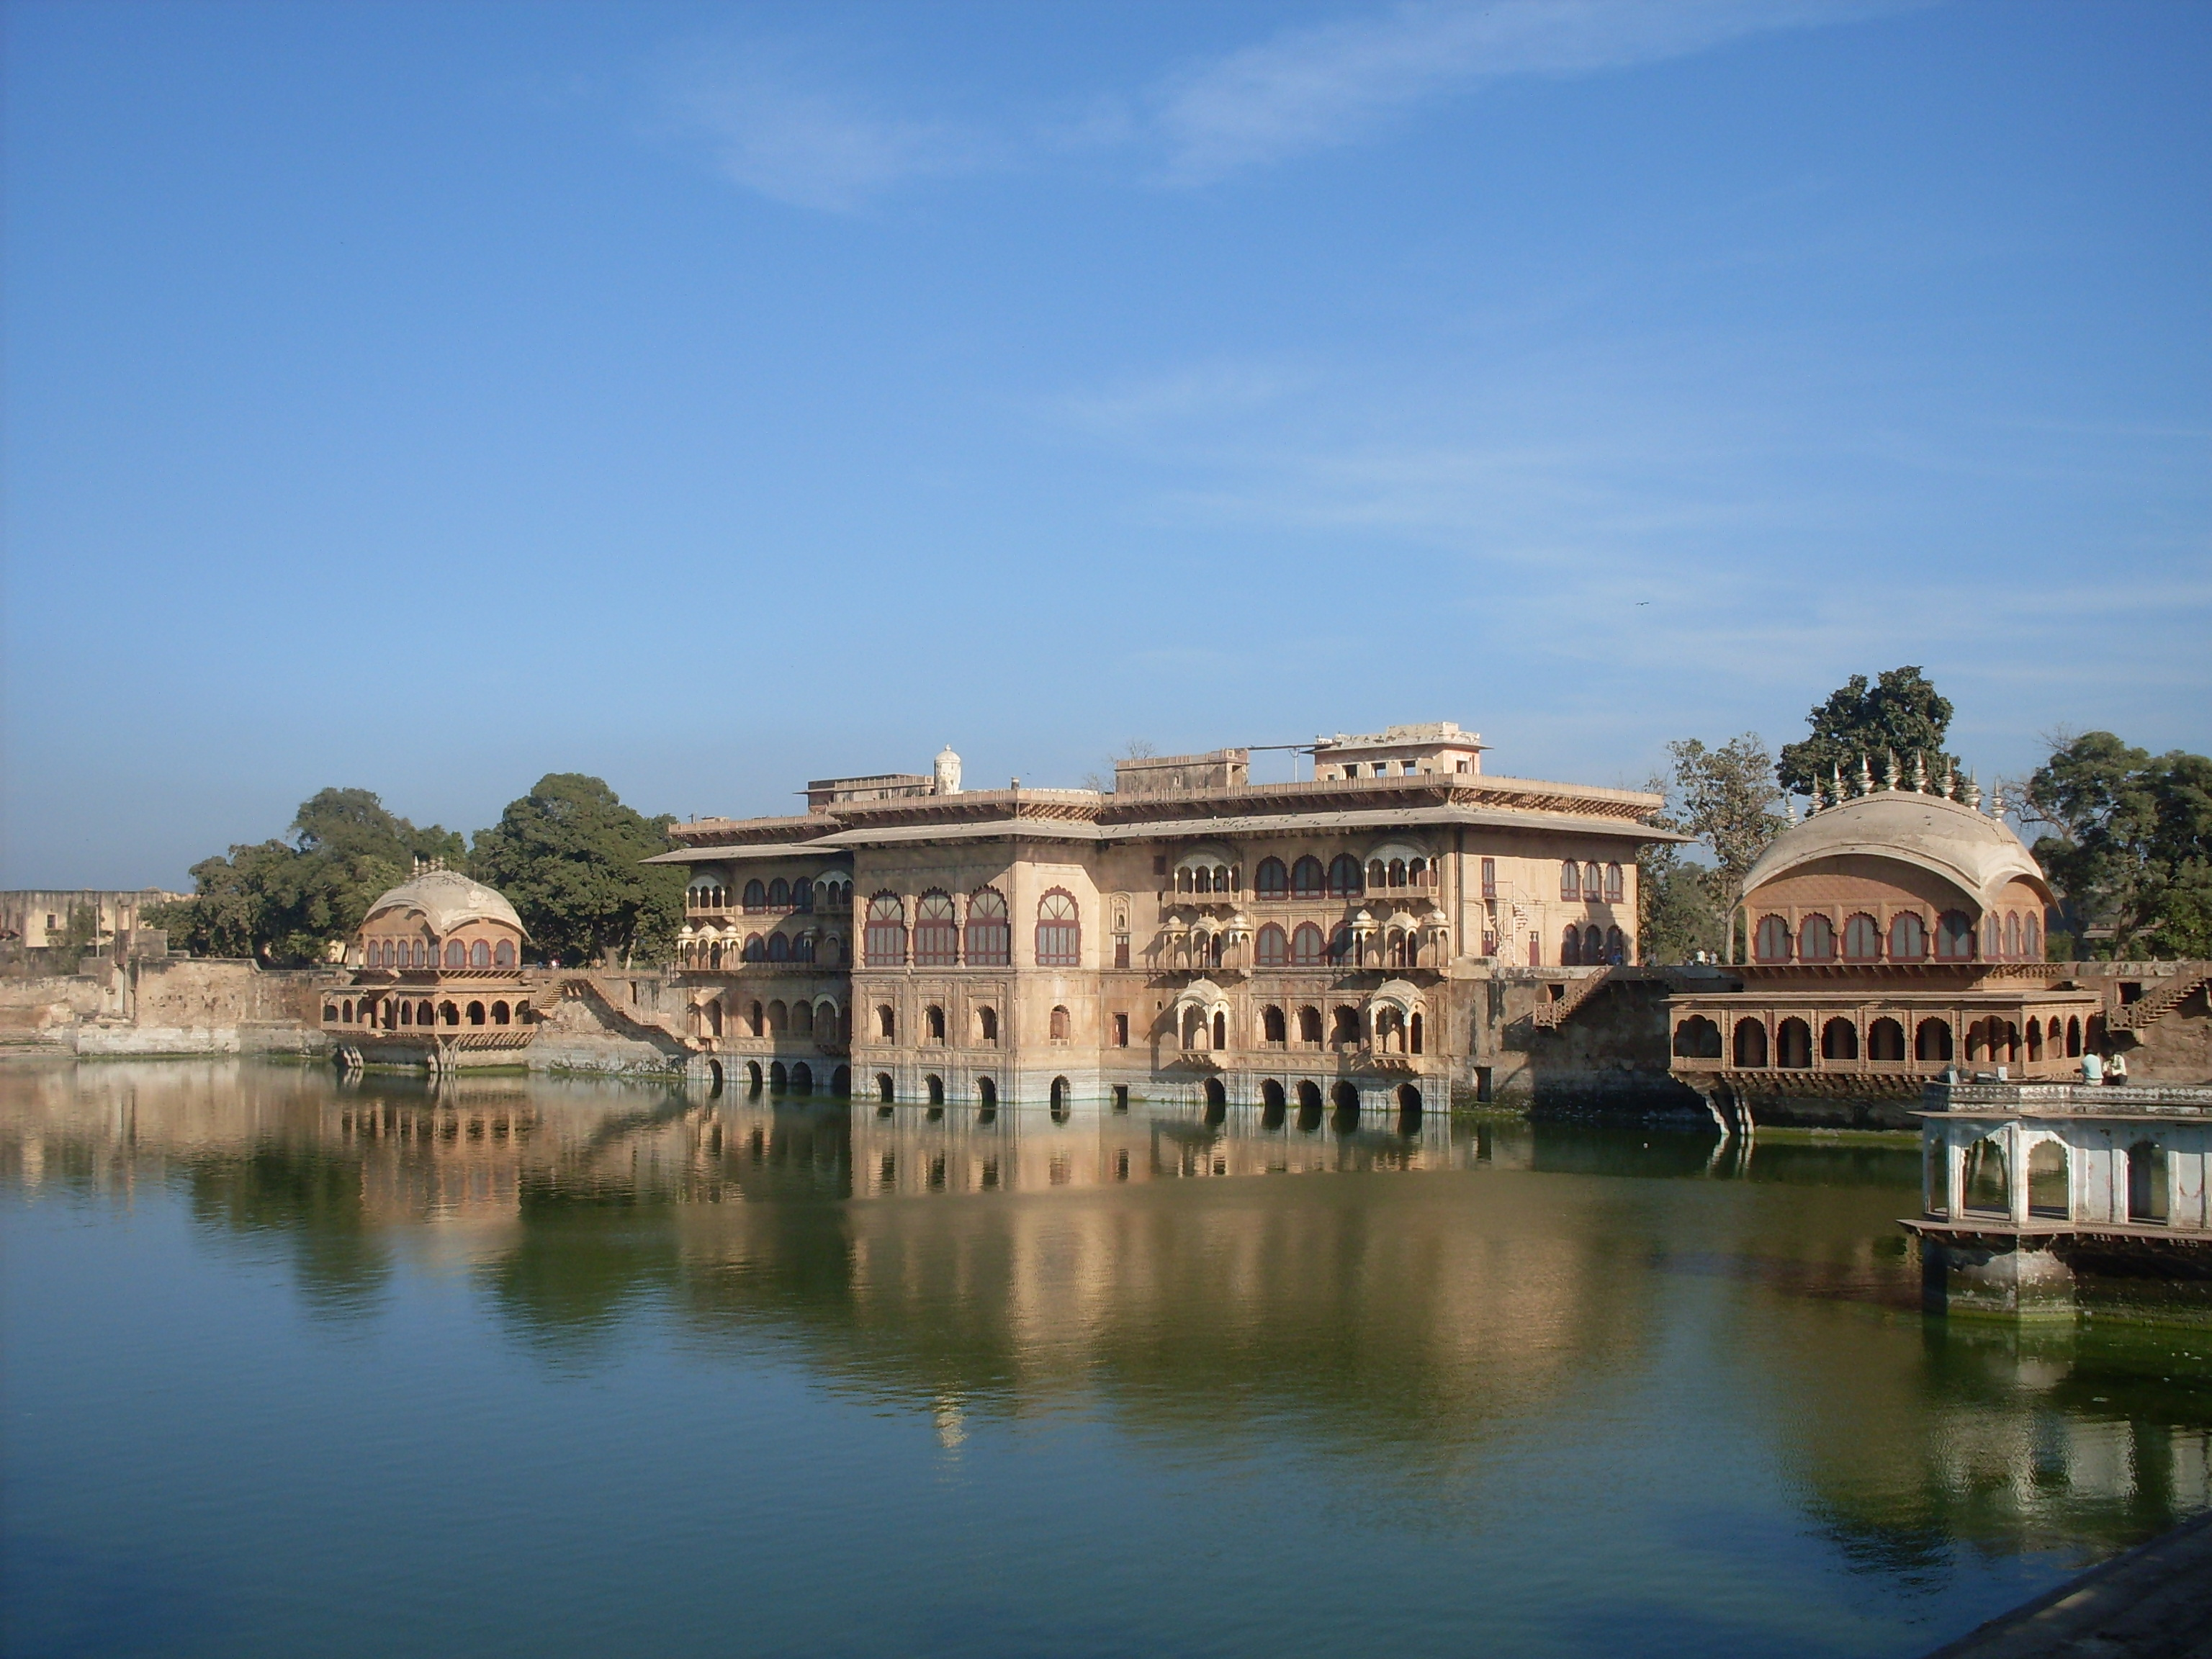 Deeg Palace or Jal Mahal or Water Palace at Deeg in Rajasthan